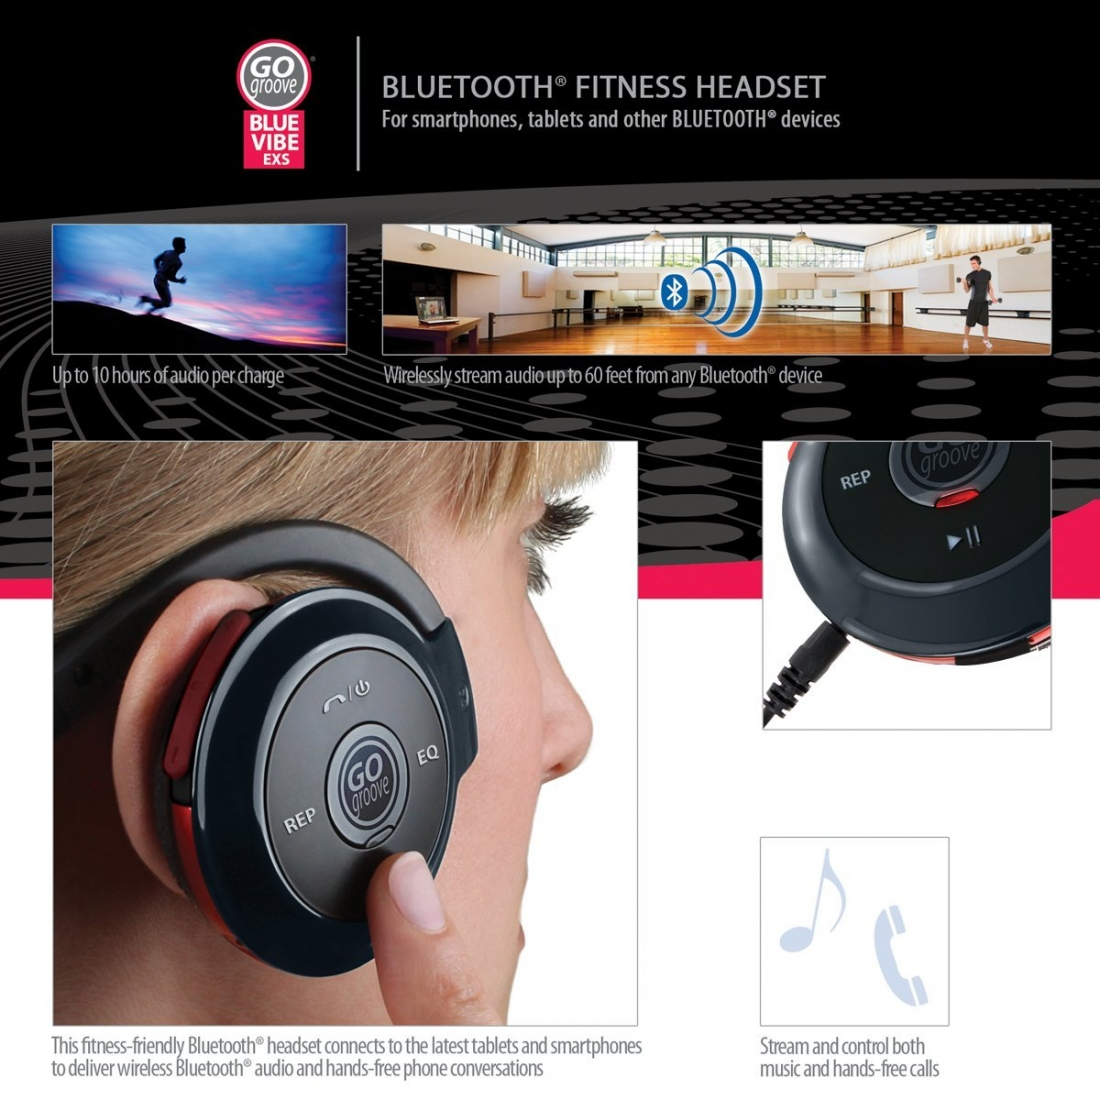 /tmo/cool_stuff_found/post/bluevibe-exs-wrap-around-bluetooth-headphones-just-19.99-free-shipping